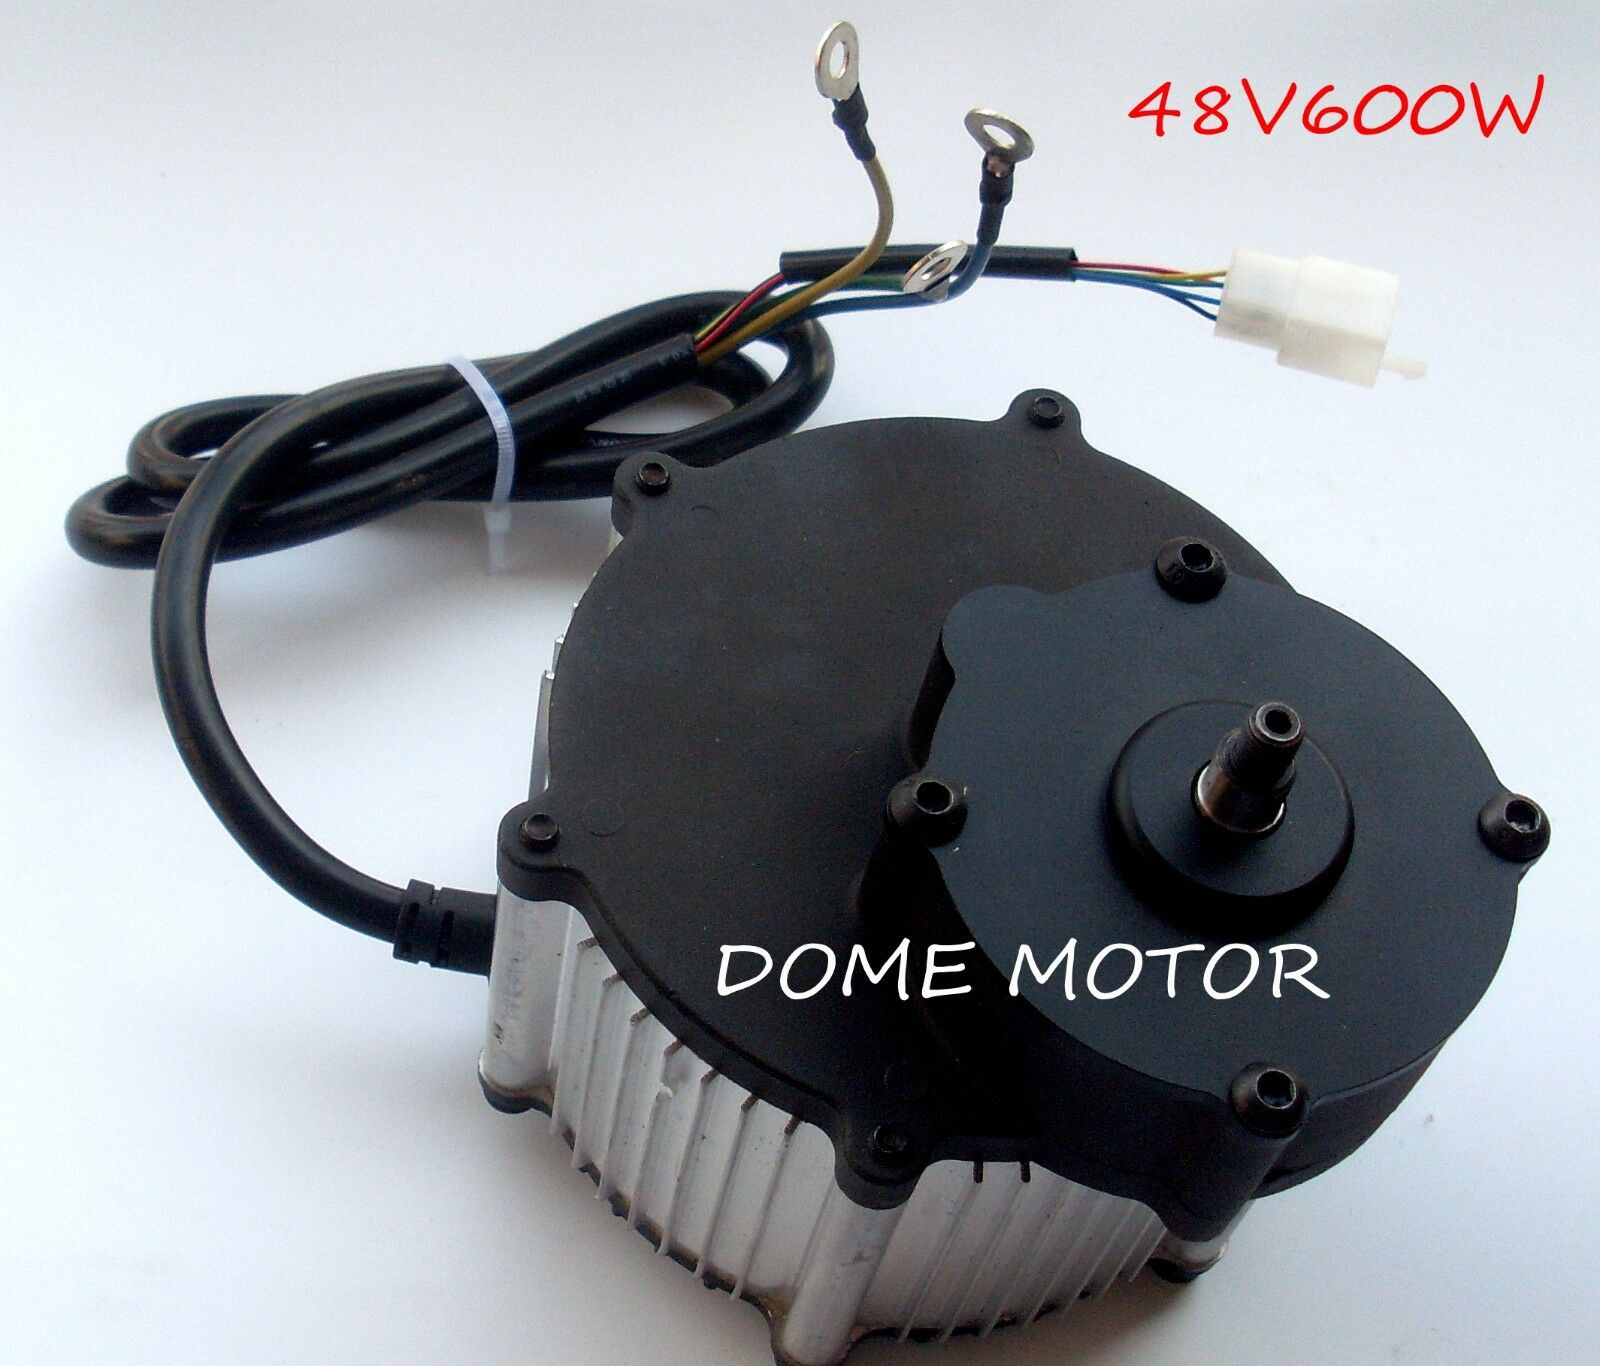 DOME 48V600W DC brushless gear motor  DM101  quality guaranteed